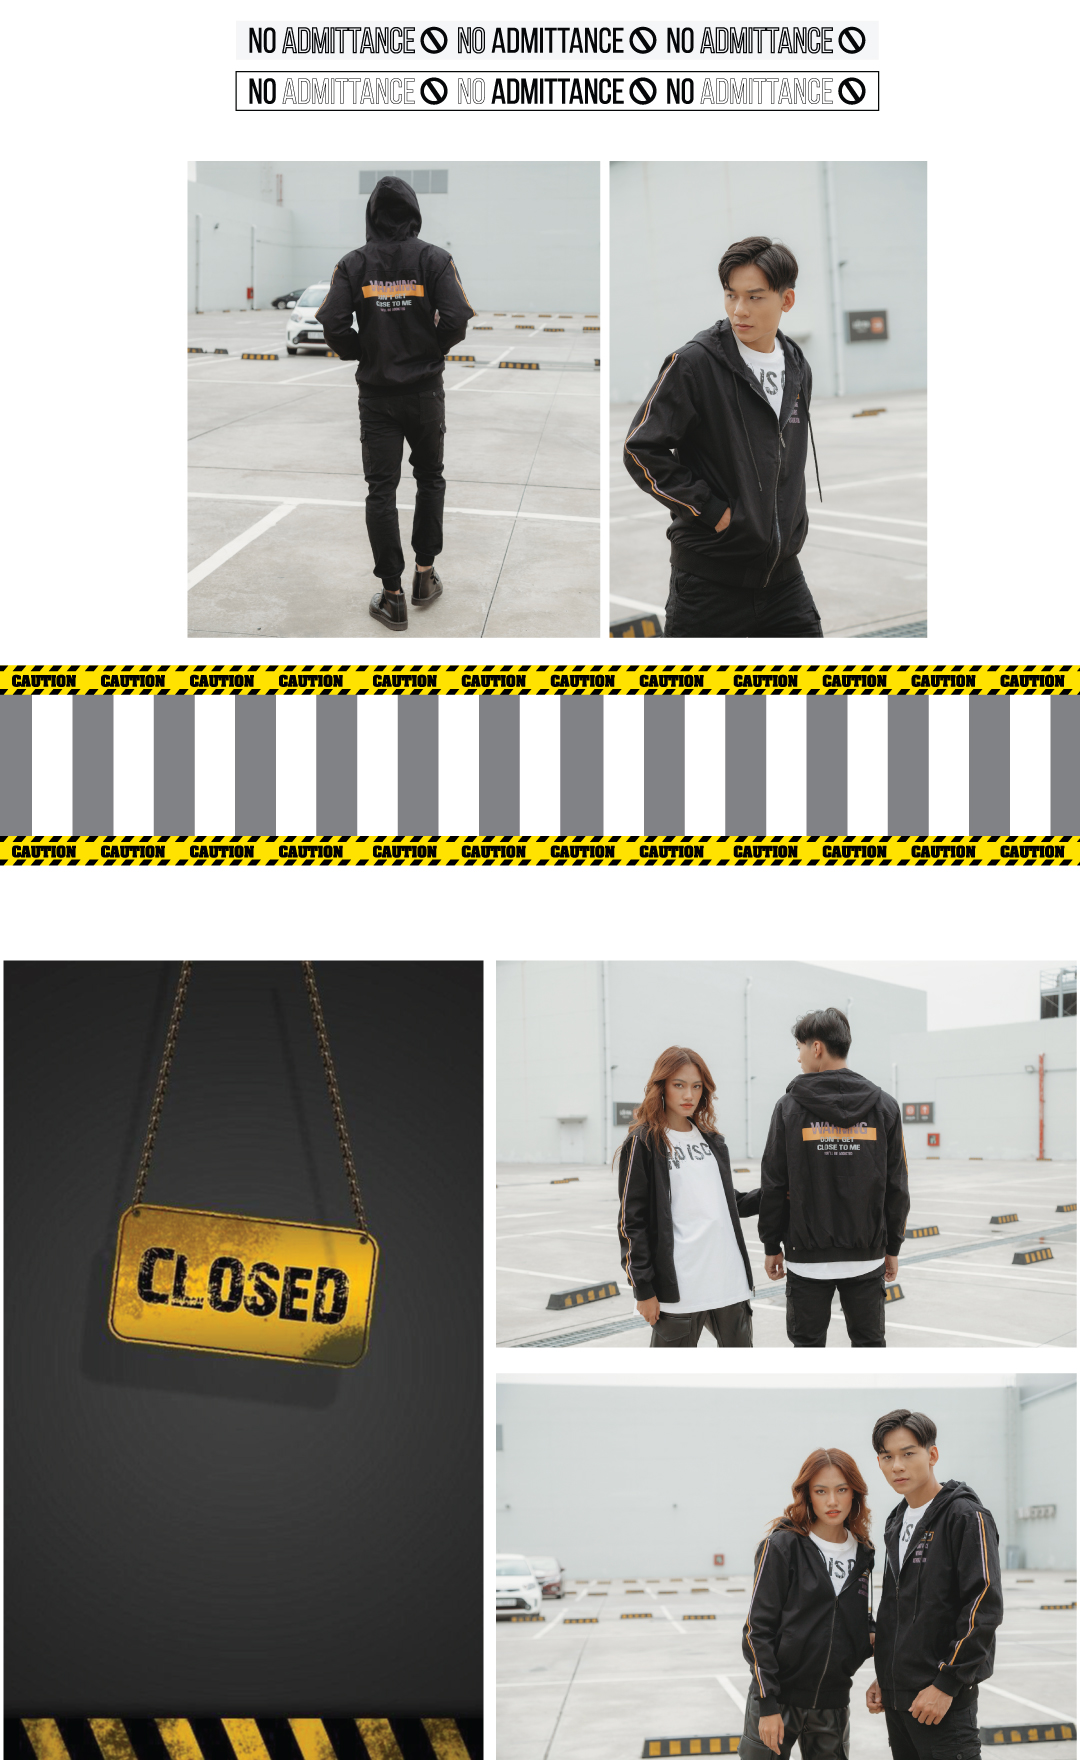 WARNING - NEW COLLECTION